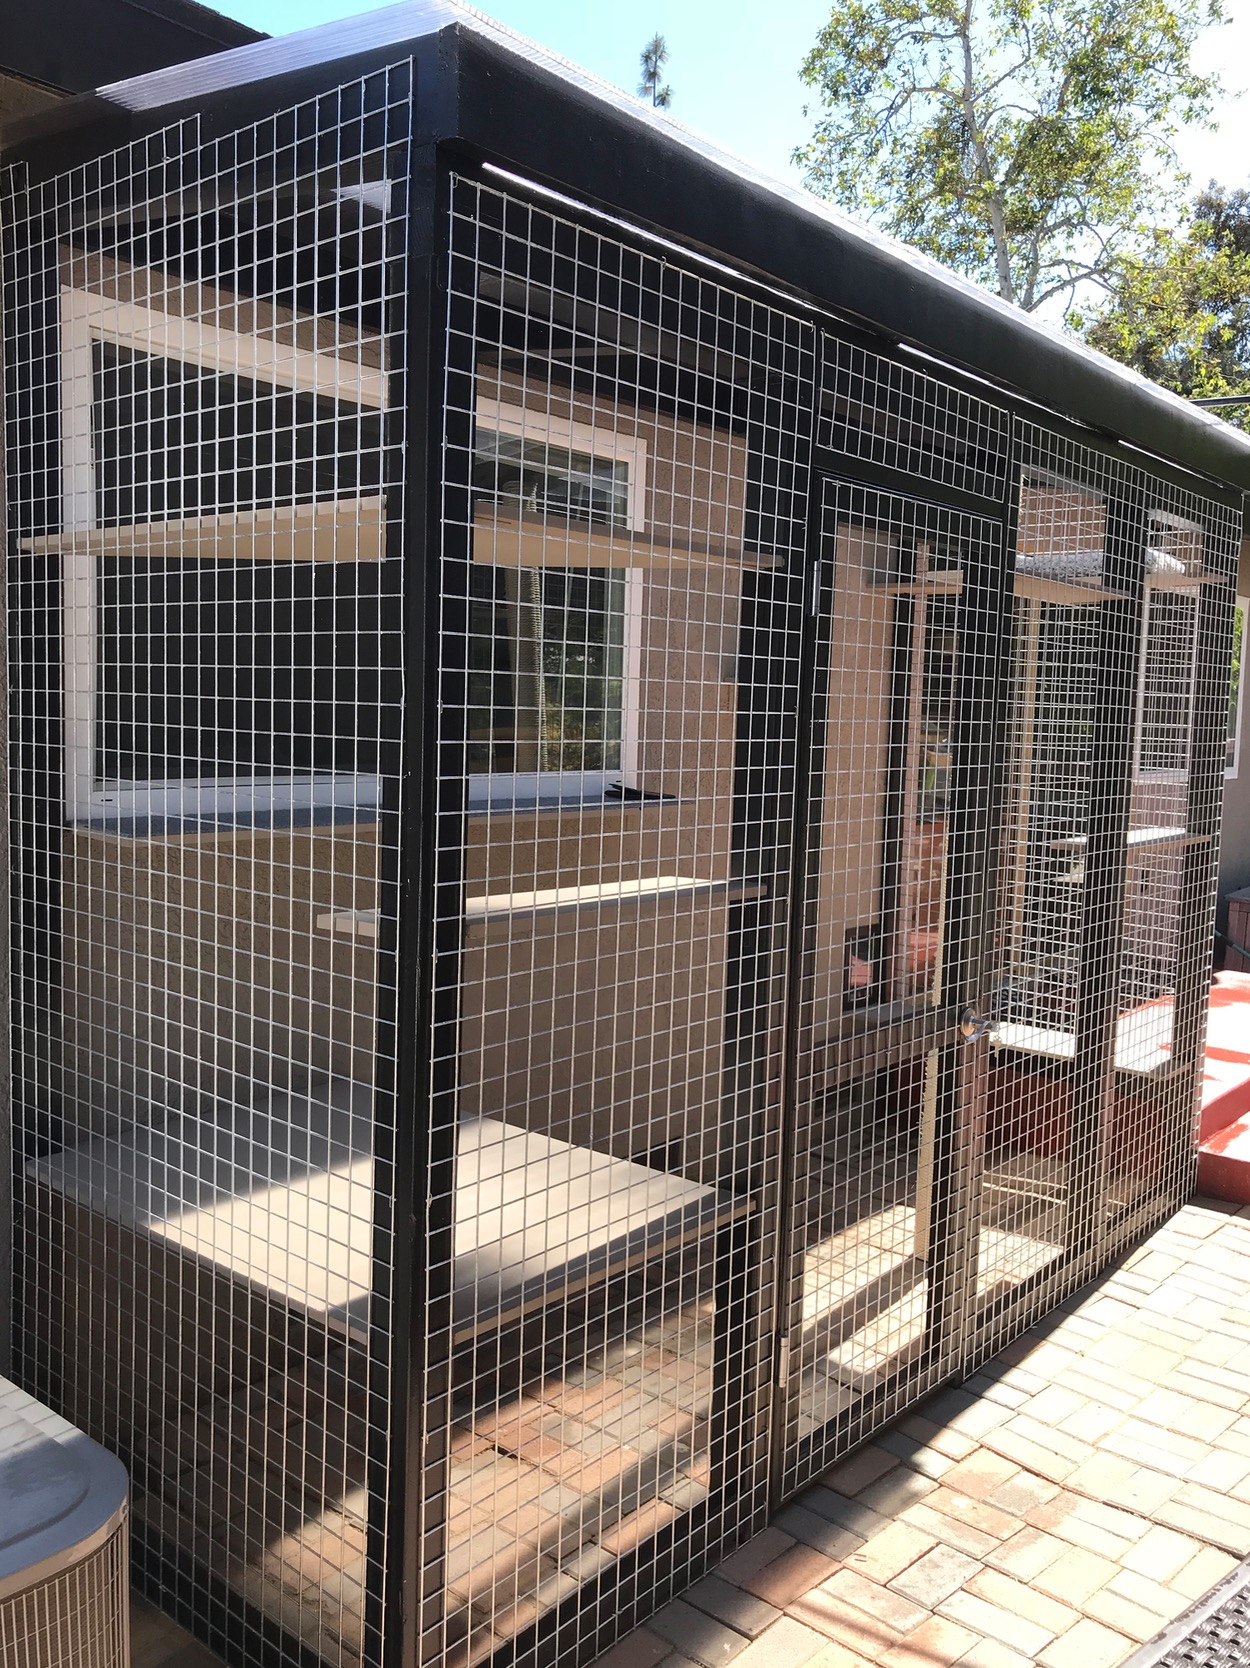 Thousand Oaks Catio